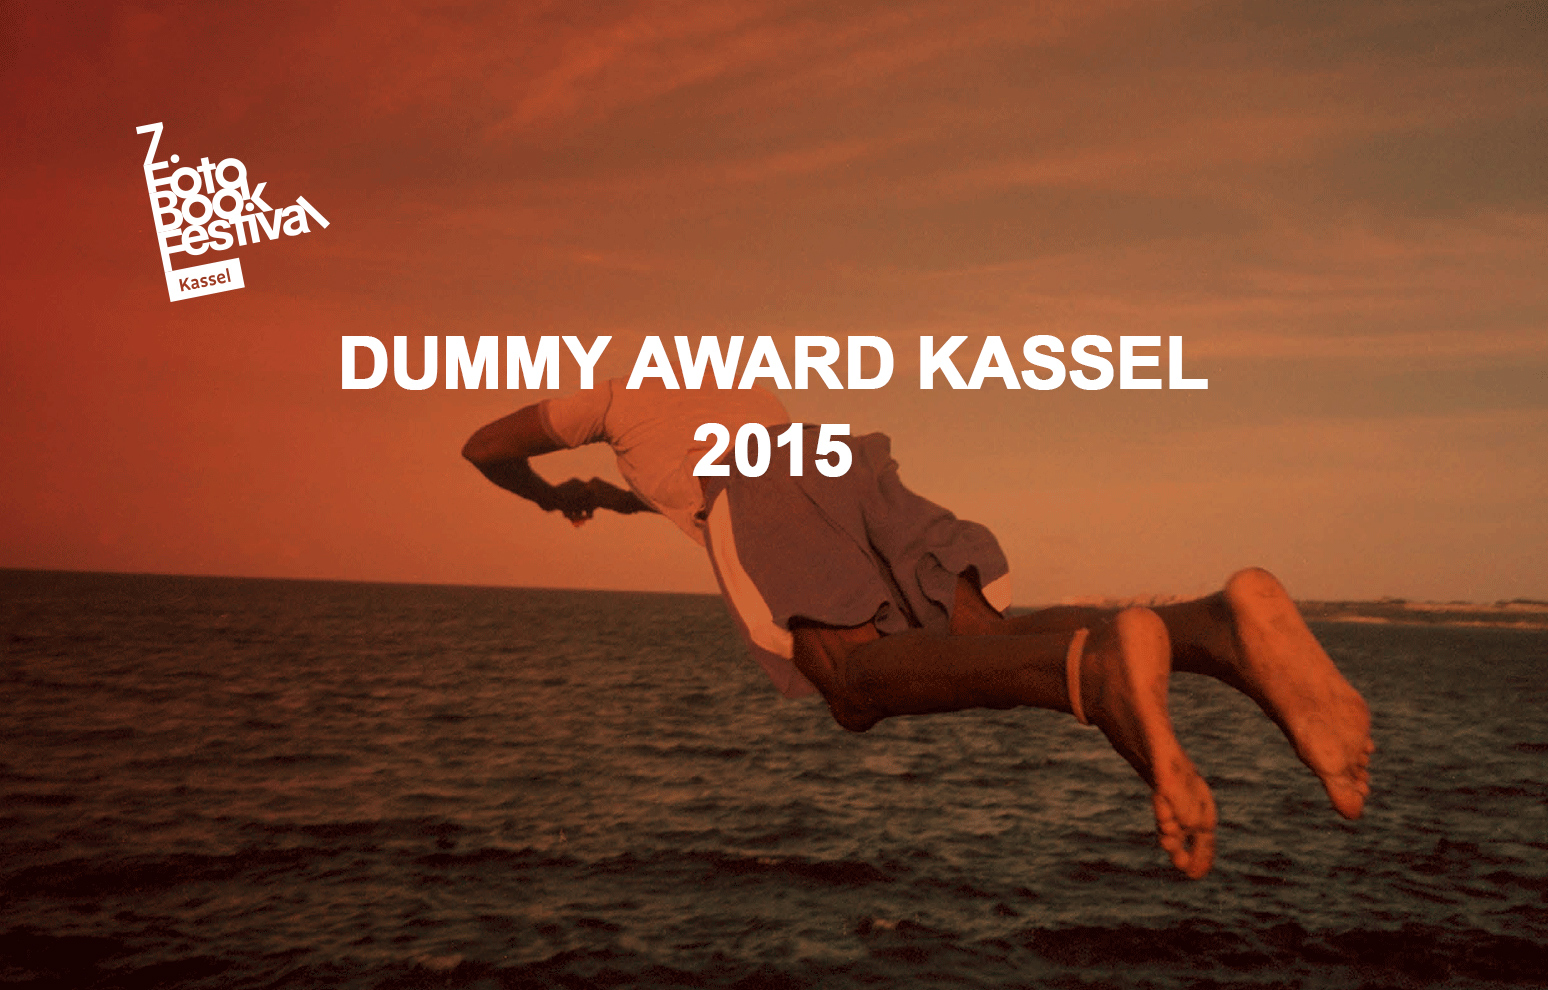 The Fotobookfestival Kassel Dummy Award 2015 at PhotoIreland Festival.